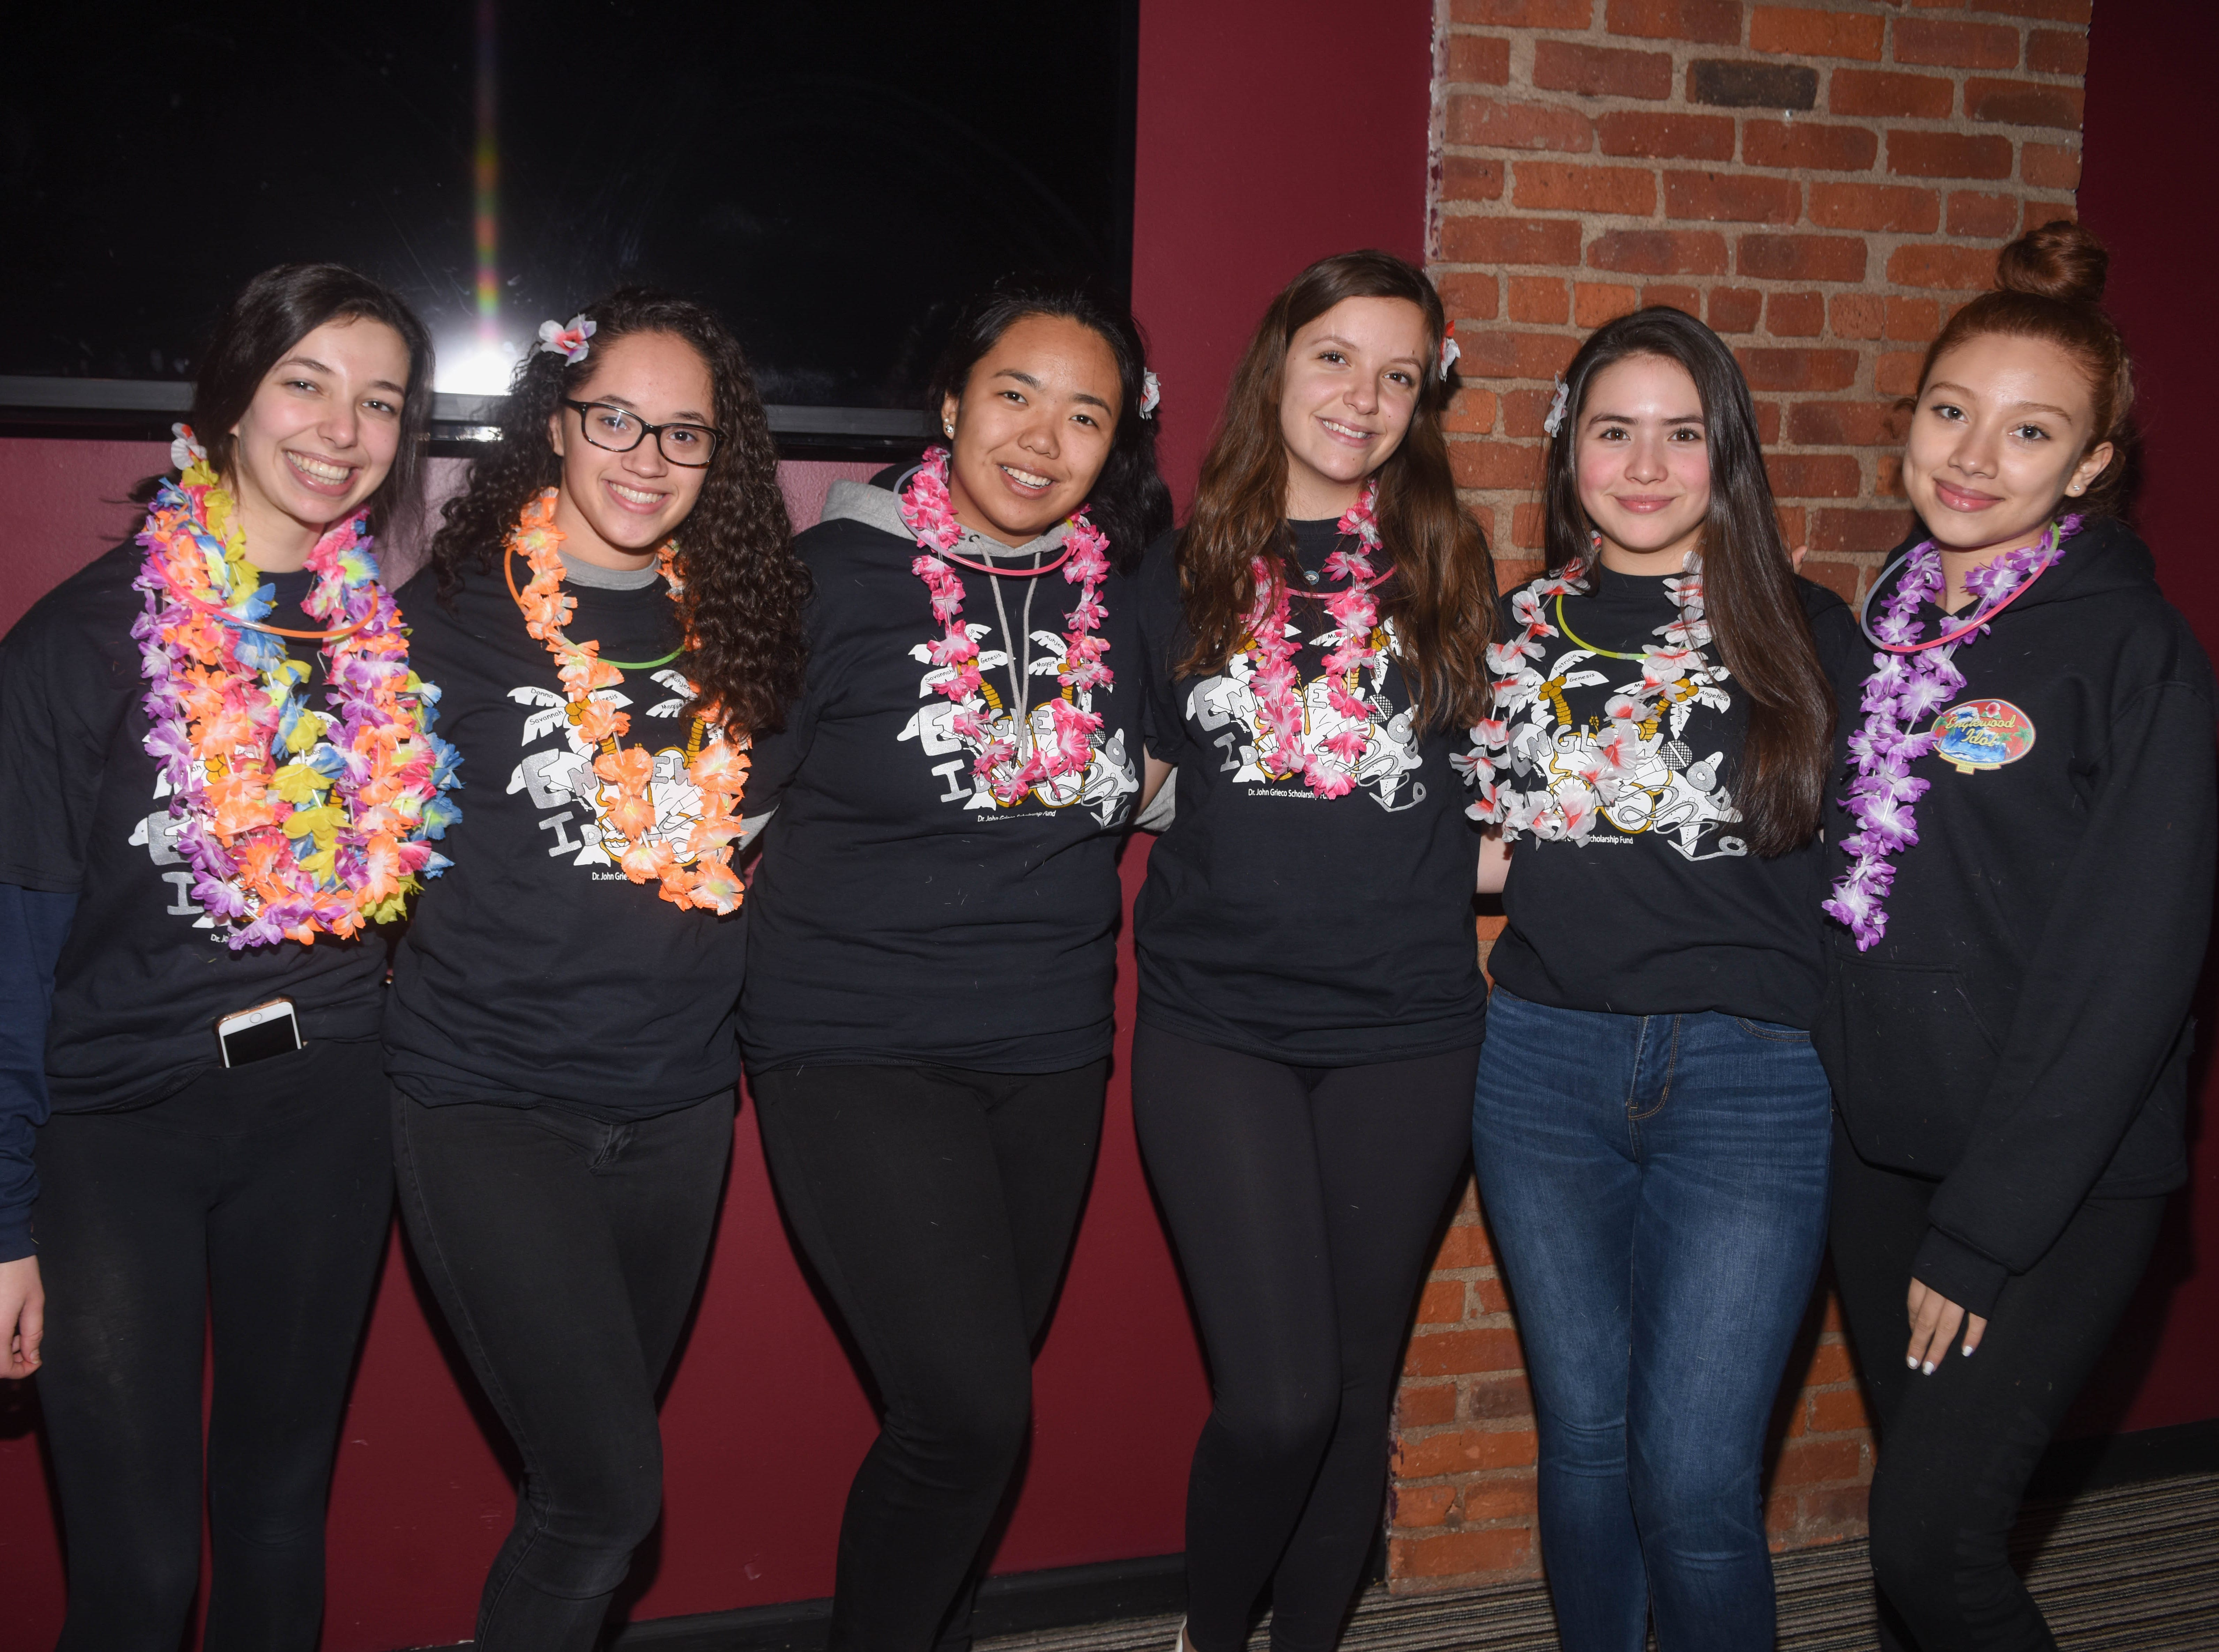 Emilia Bern, Sofia Figueroa, Dekyi Tsotsong, Klaudia Spahiu, Nelufar Shatursun and Rebecca Reyes. The 2019 Englewood Idol was held at bergenPAC theater. The singing competition is open to any high school student who currently lives or goes to school in Englewood, NJ. This years winner was Genesis Capellan. 01/11/2019